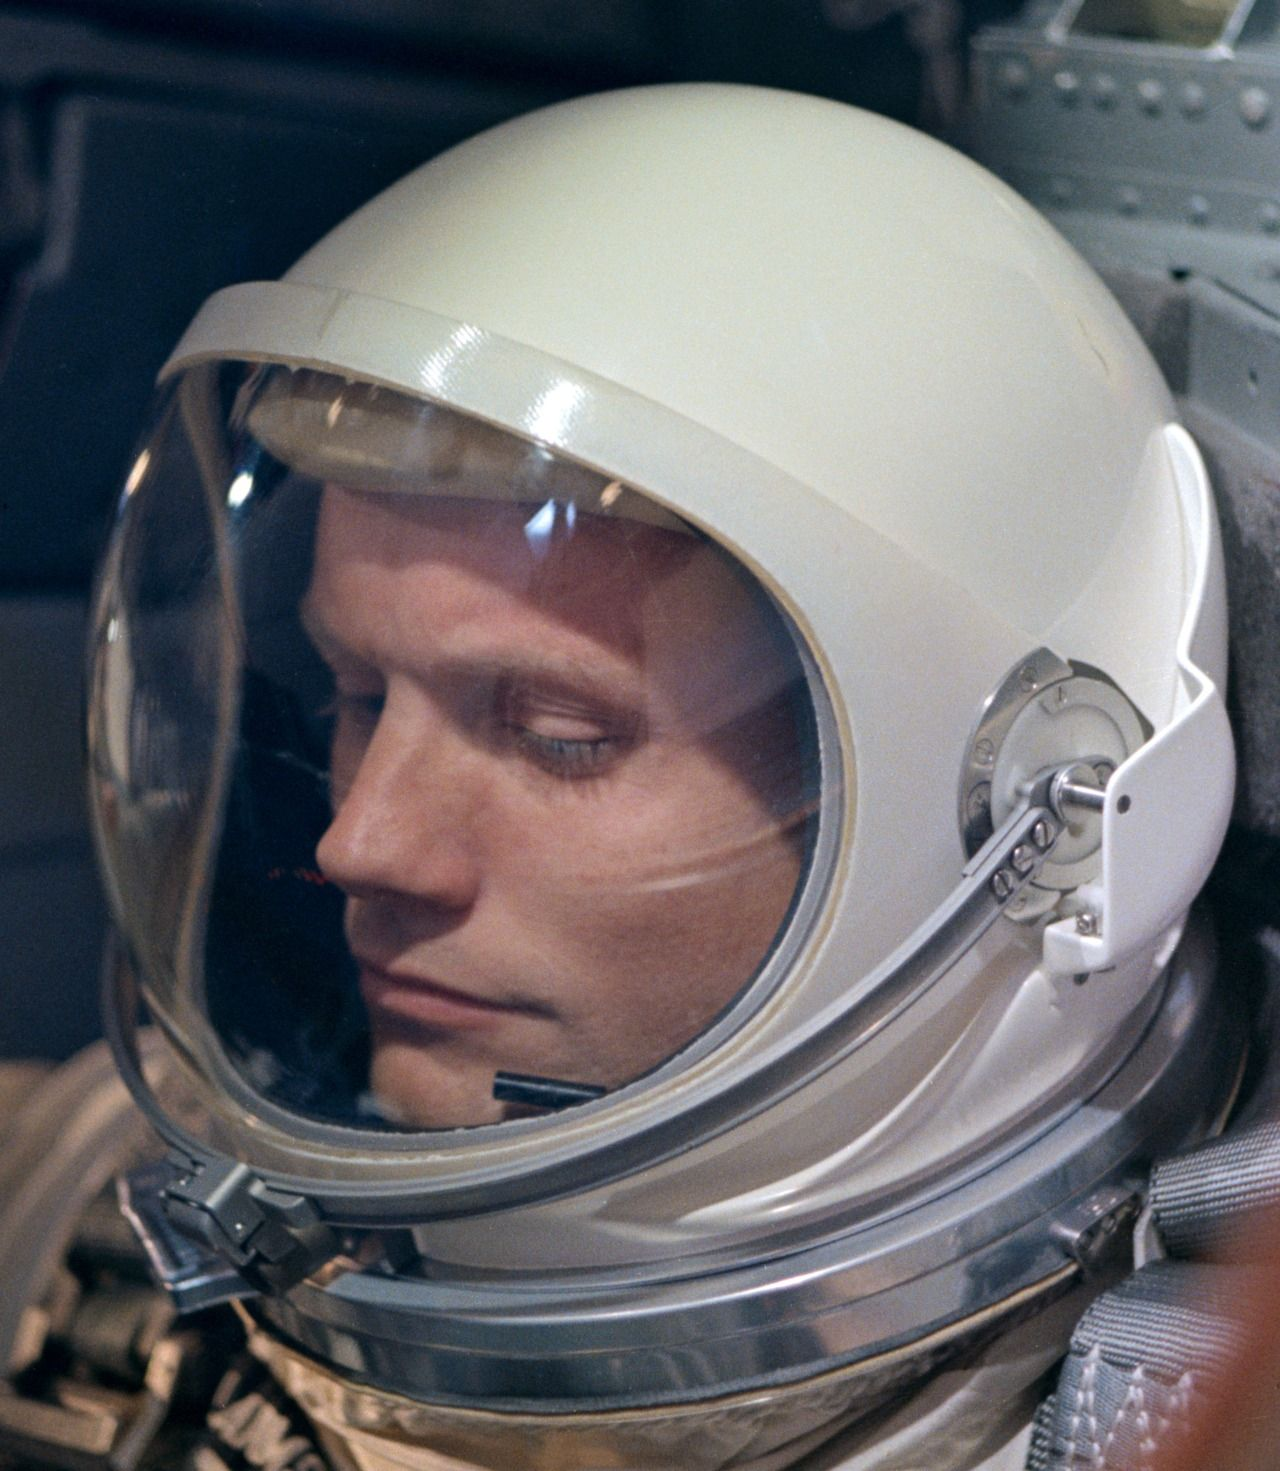 Astronaut Neil Armstrong in his Gemini days, 1966